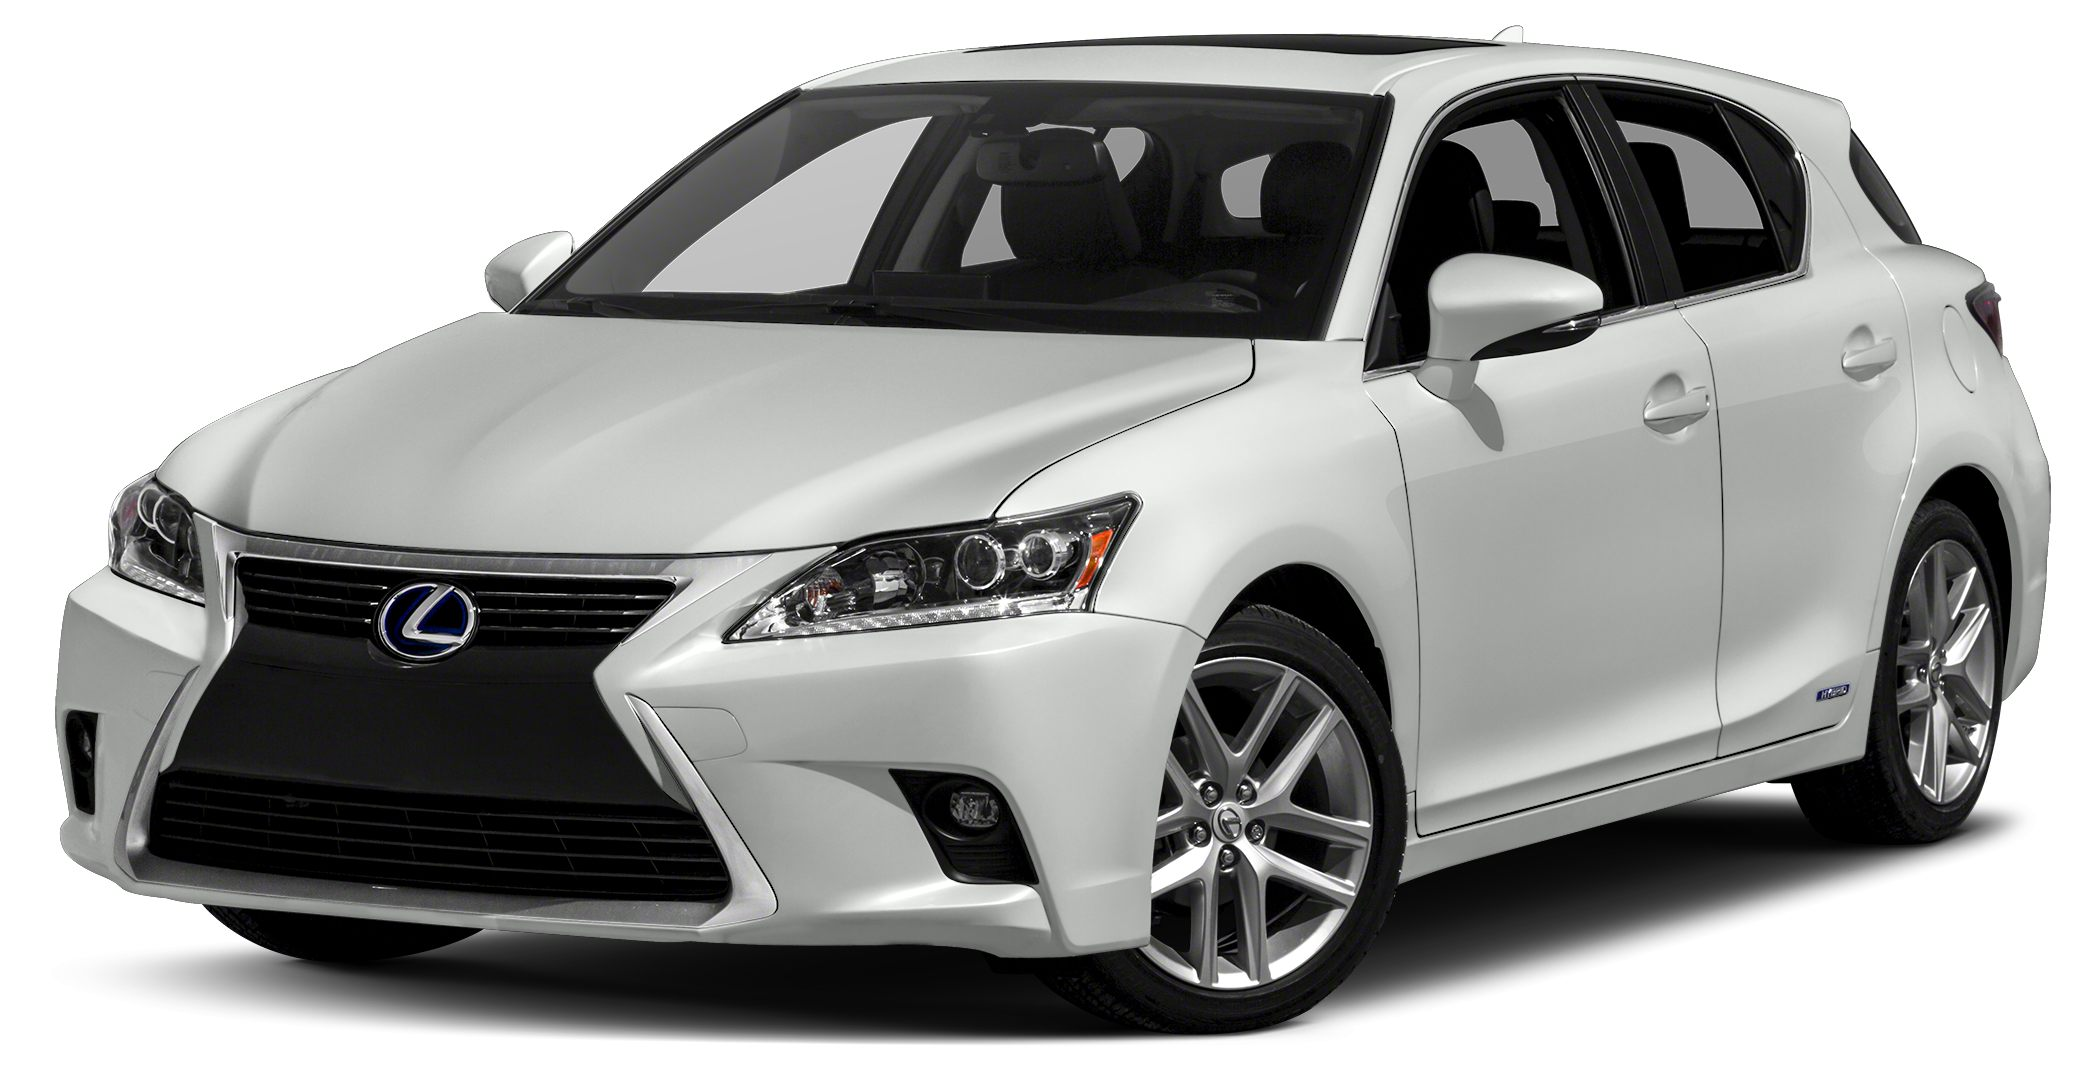 2014 Lexus CT 200h Base This 2014 CT is for Lexus fans looking far and wide for that perfect car